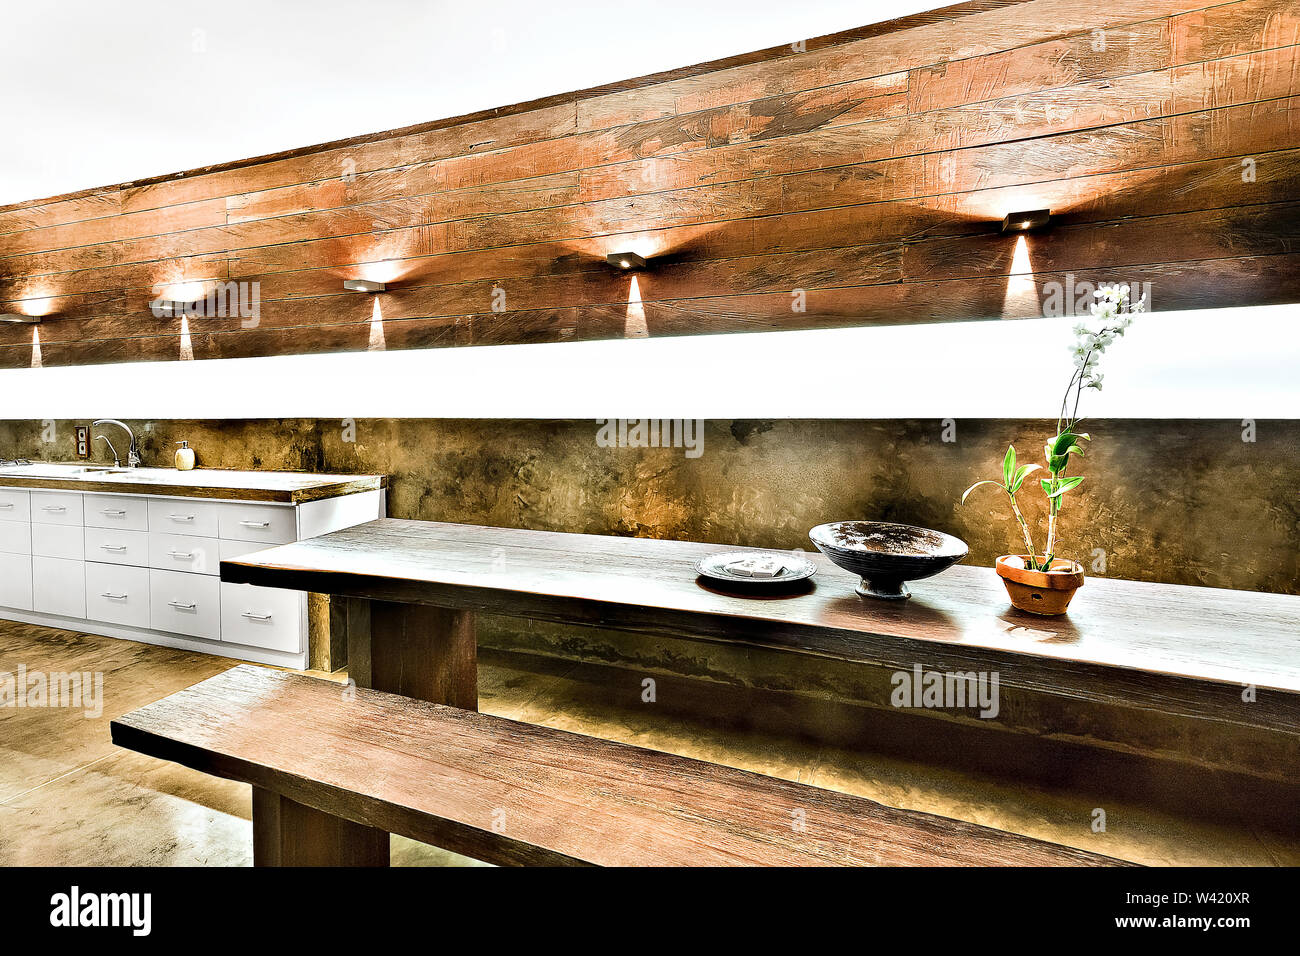 Outdoor dining or patio area with wooden furniture including benches and tables under the flashing lights Stock Photo